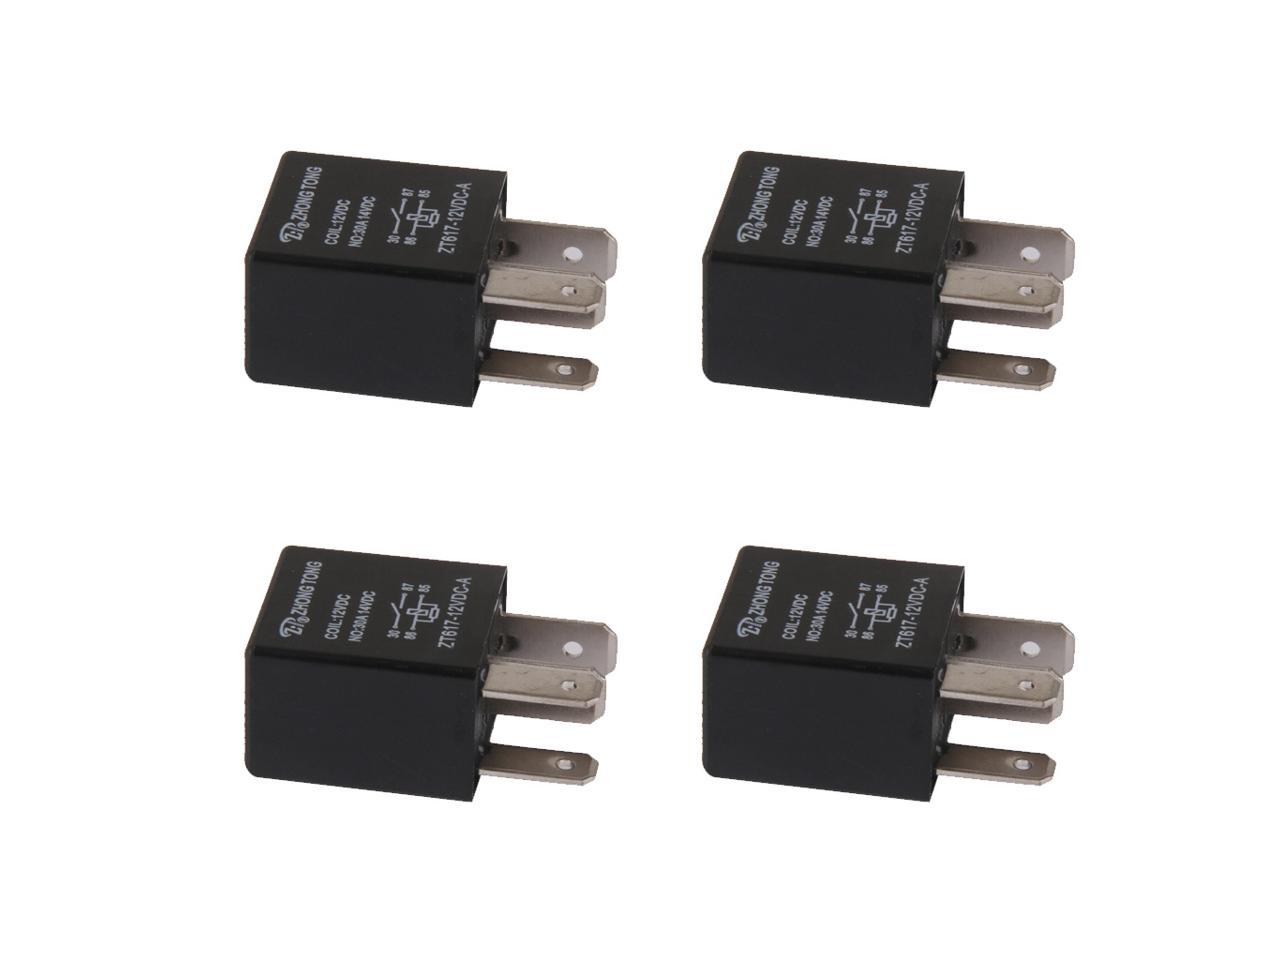 4 Pieces Car Automotive 12v 30 Amp 4 Pin Spst Relay For